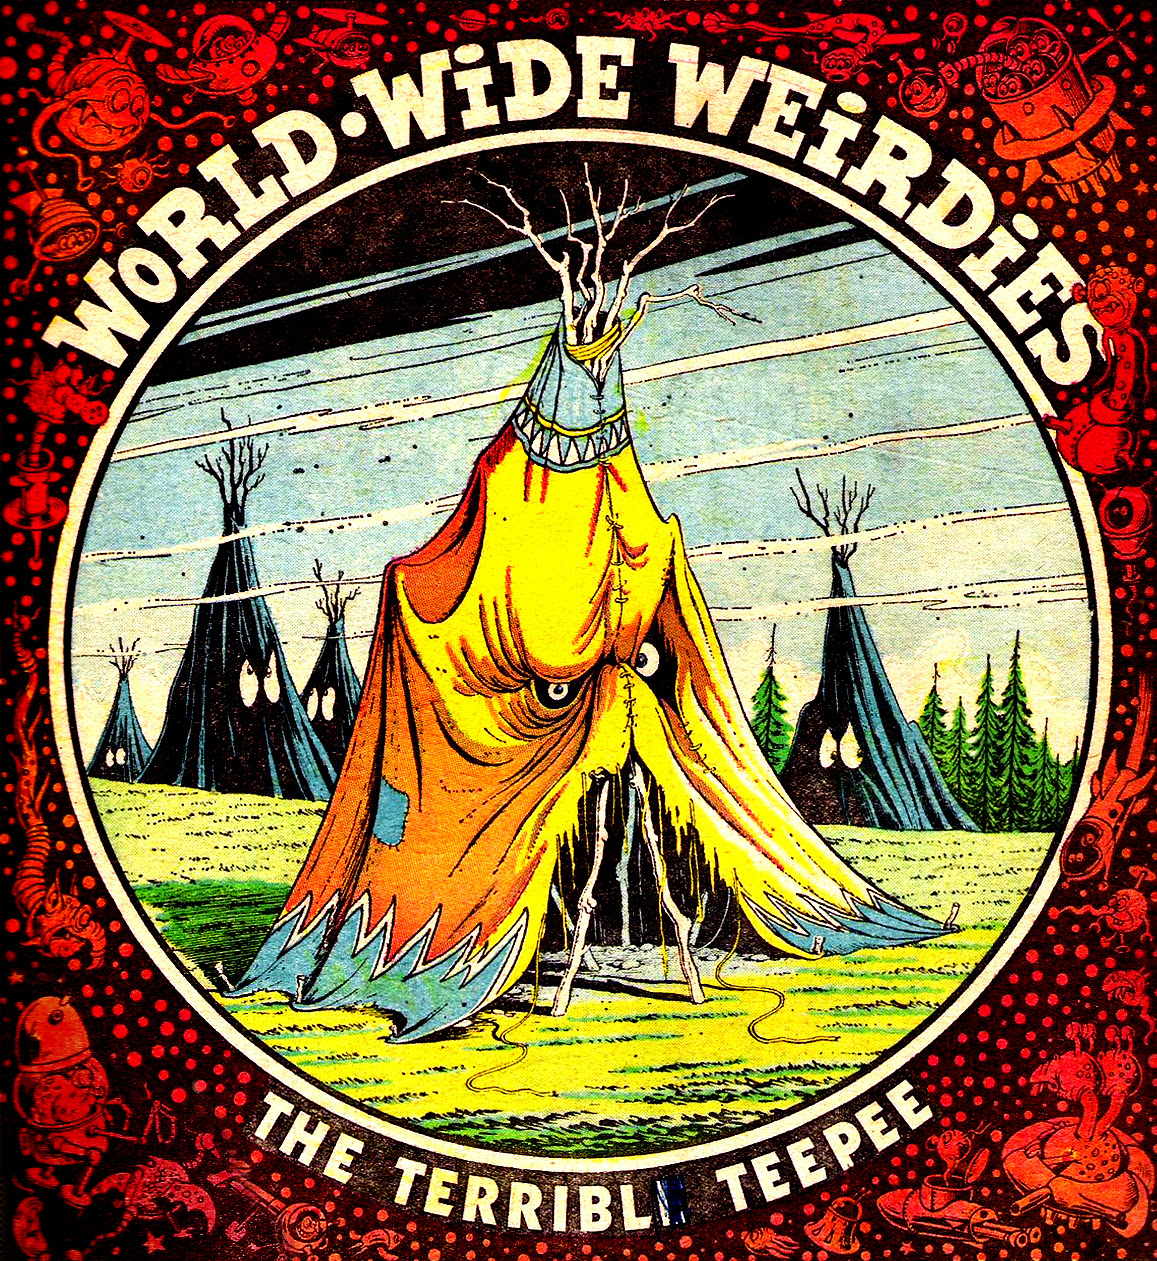 Ken Reid - World Wide Weirdies 36